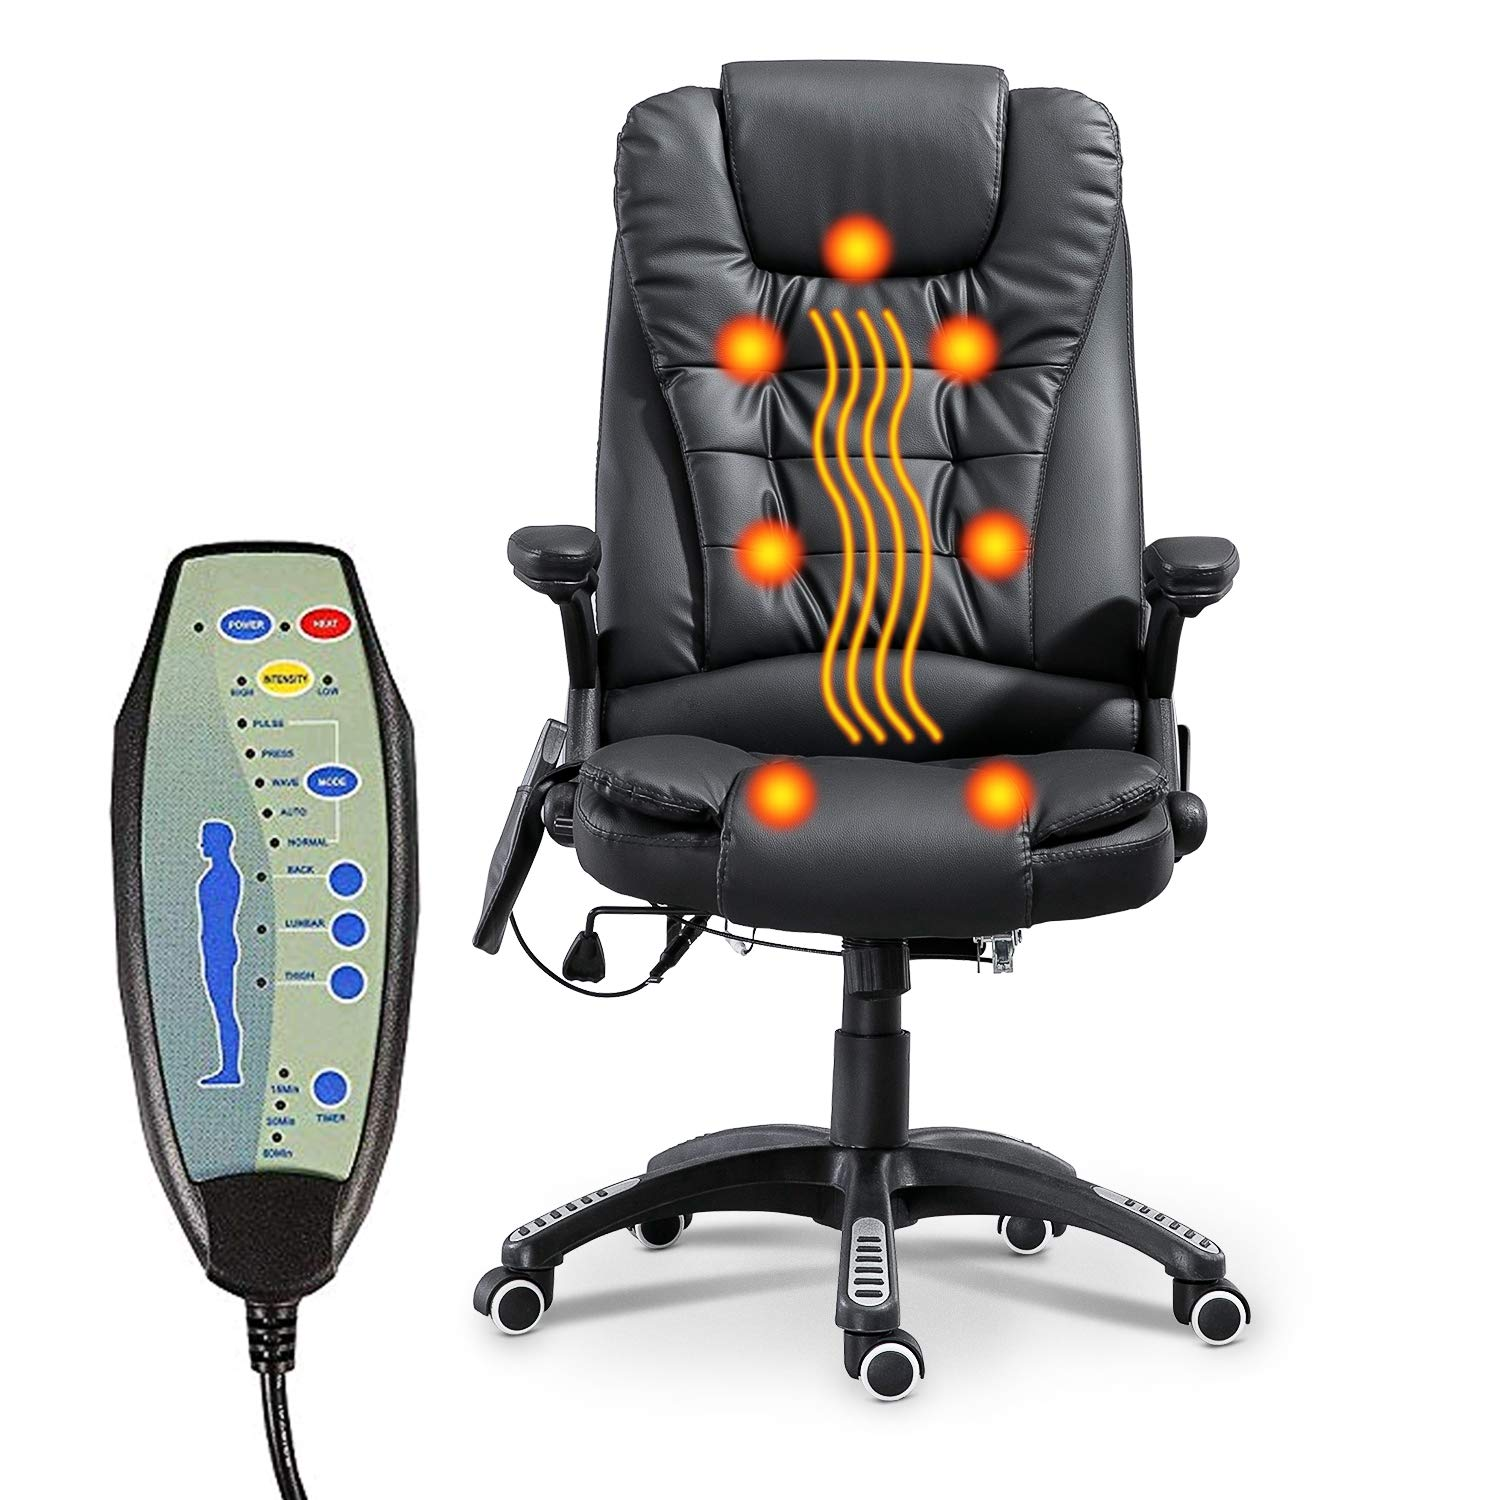 windaze Massage Chair Office Swivel Executive Ergonomic Heated Vibrating Chair for Computer Desk(Black) by windaze